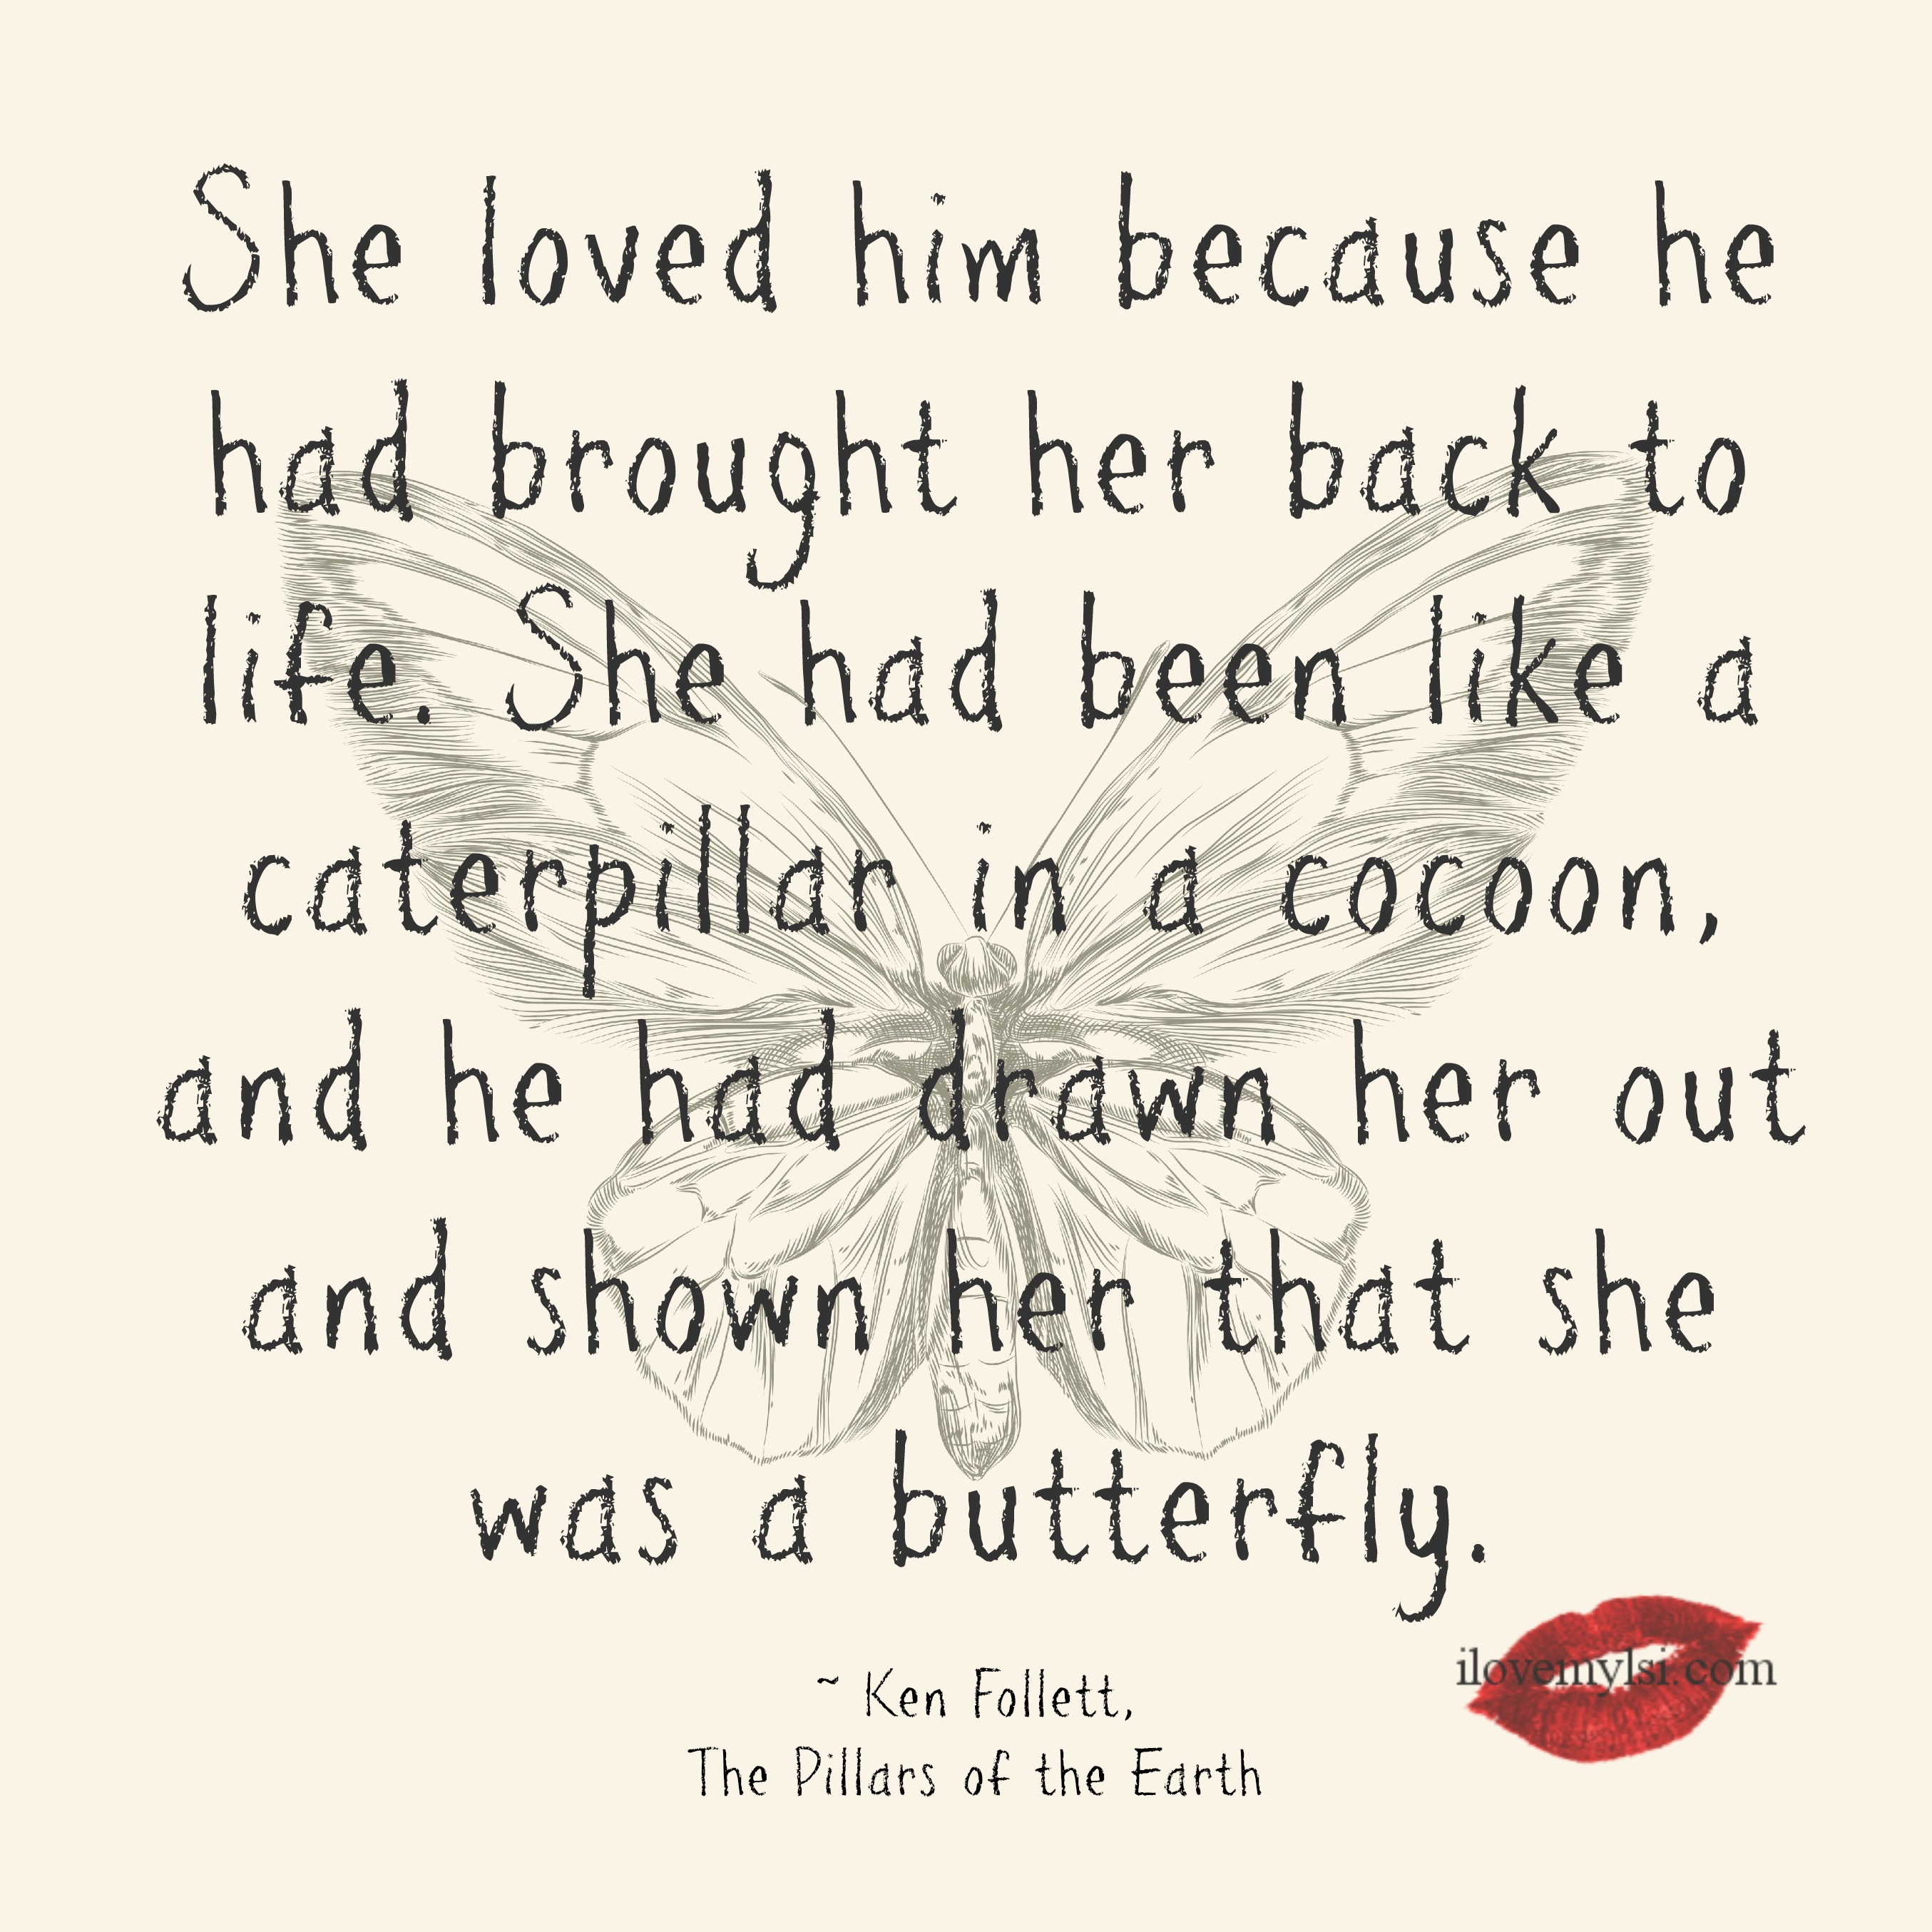 Love Quotes For Him From Novels : Pics Photos - Love Quotes For Her From Him Love Quotes For Her Quotes